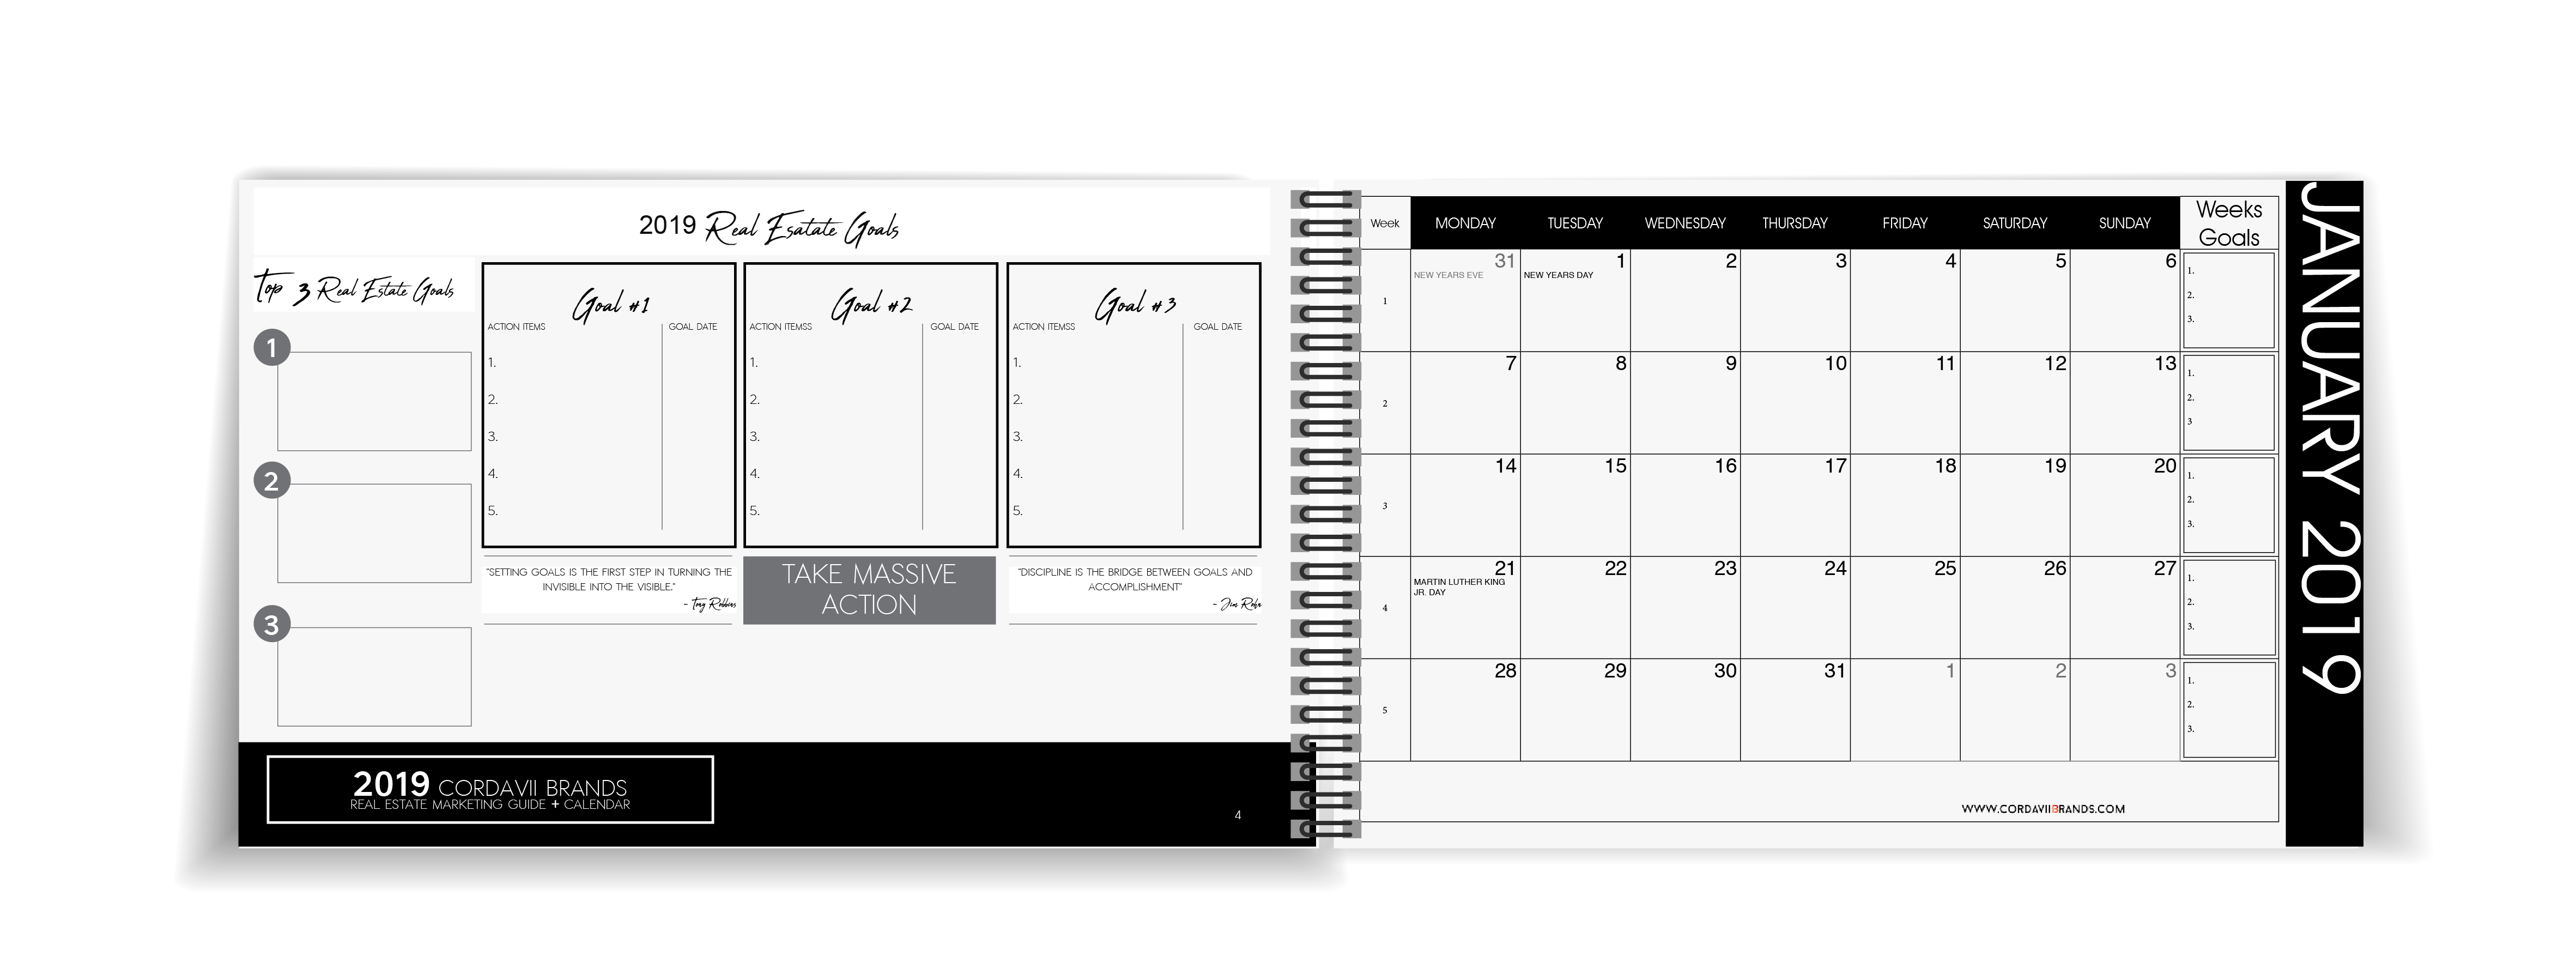 Cordavii 2019 Real Estate Marketing Calendar inside sample coevers